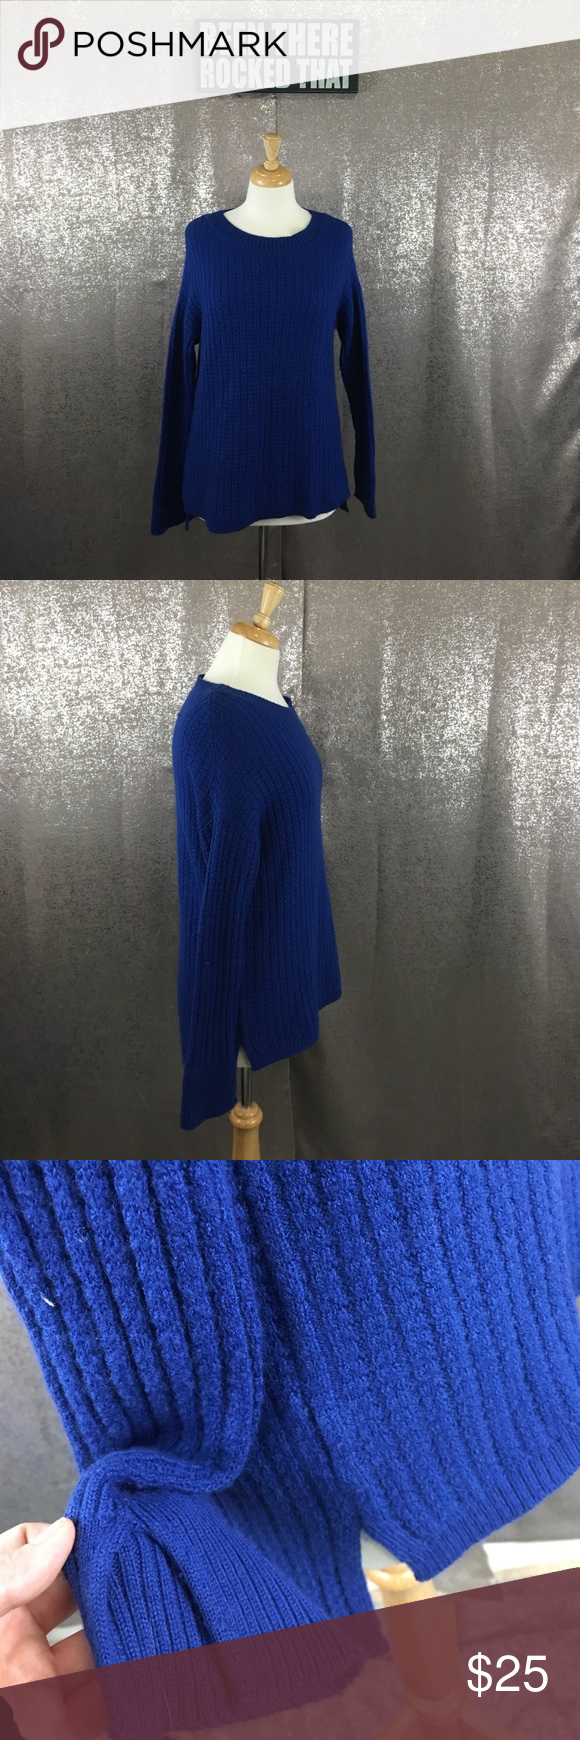 Ann Taylor high low tunic slit sleeve sweater In excellent preowned condition Ann Taylor Sweaters Crew & Scoop Necks